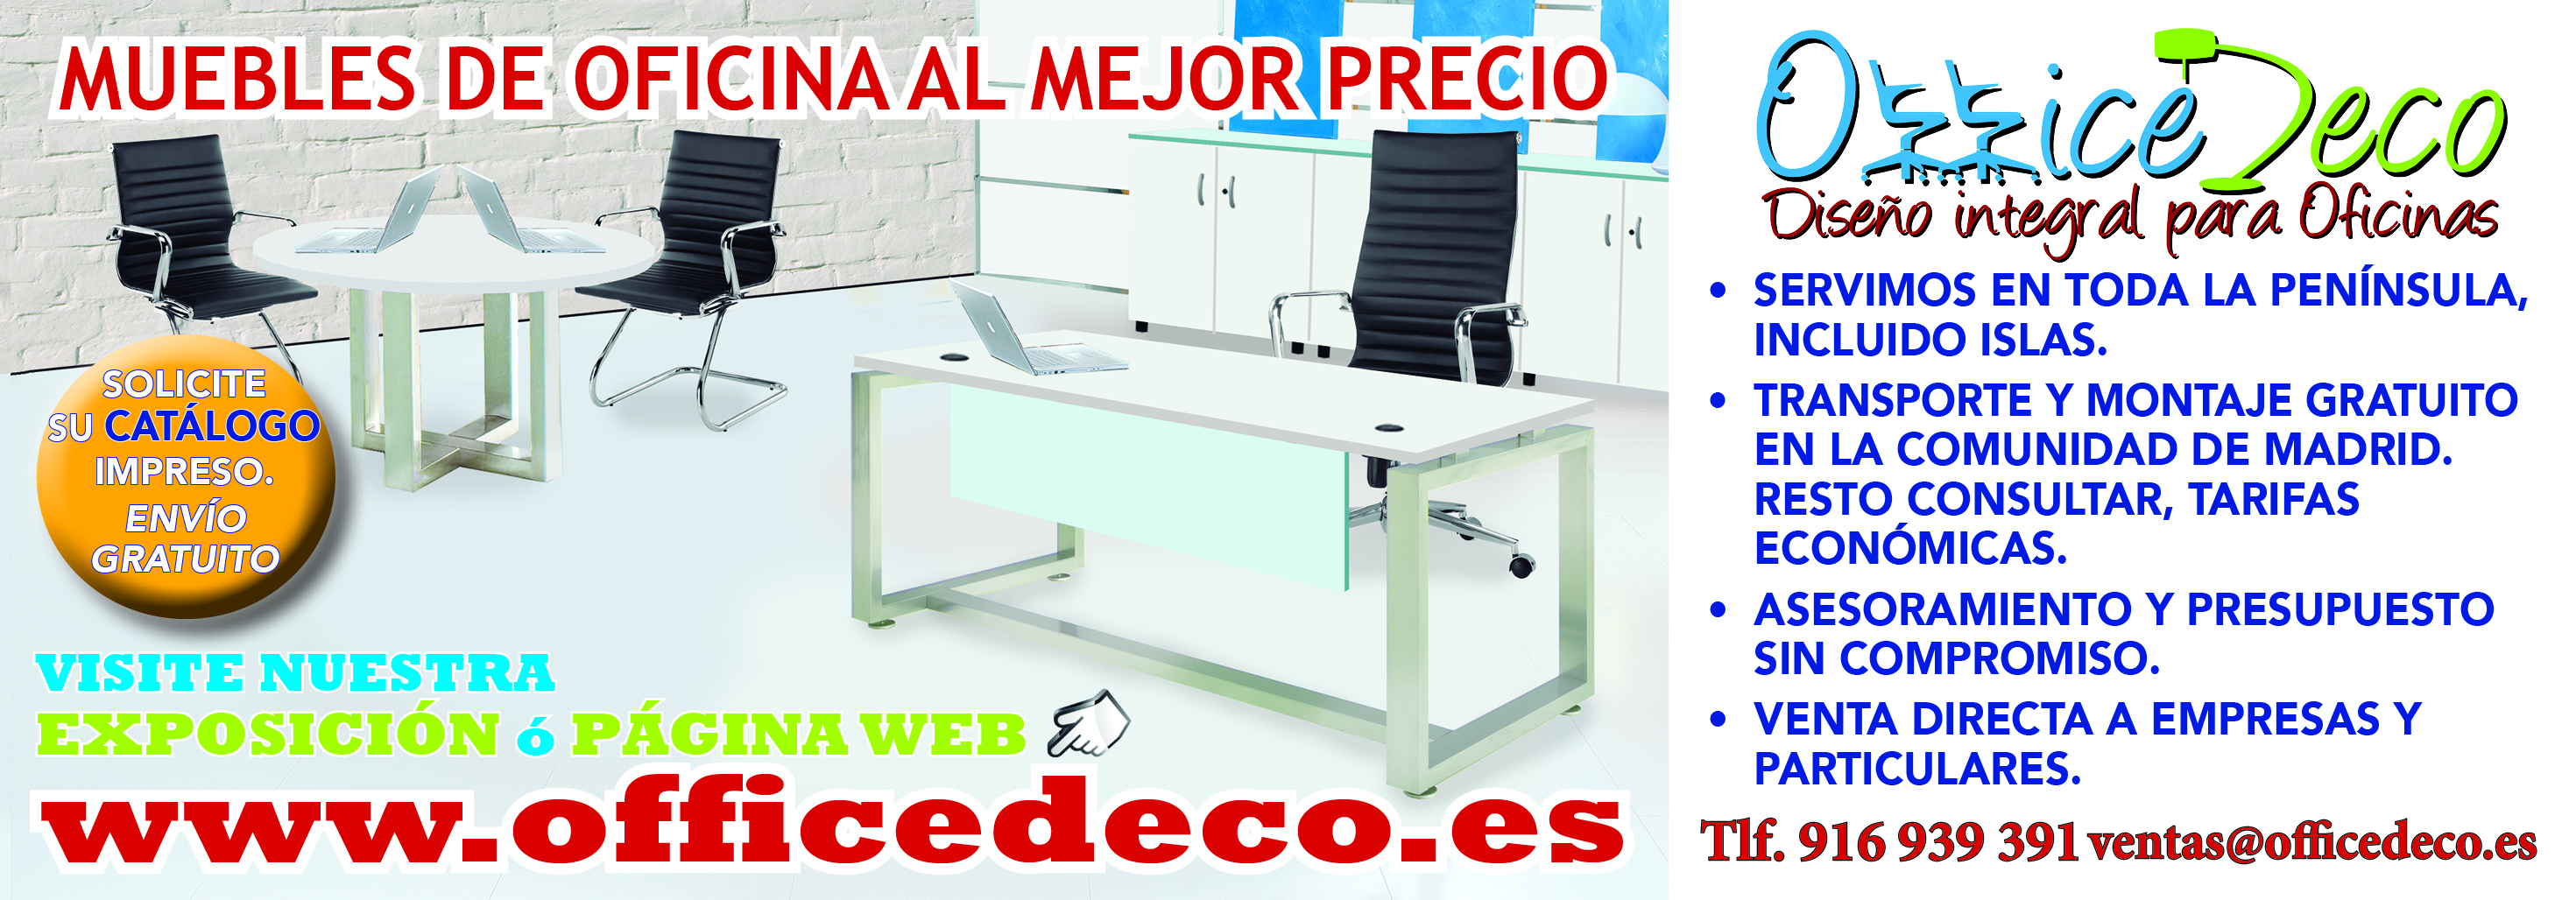 officedeco-faldones-tv-249x87